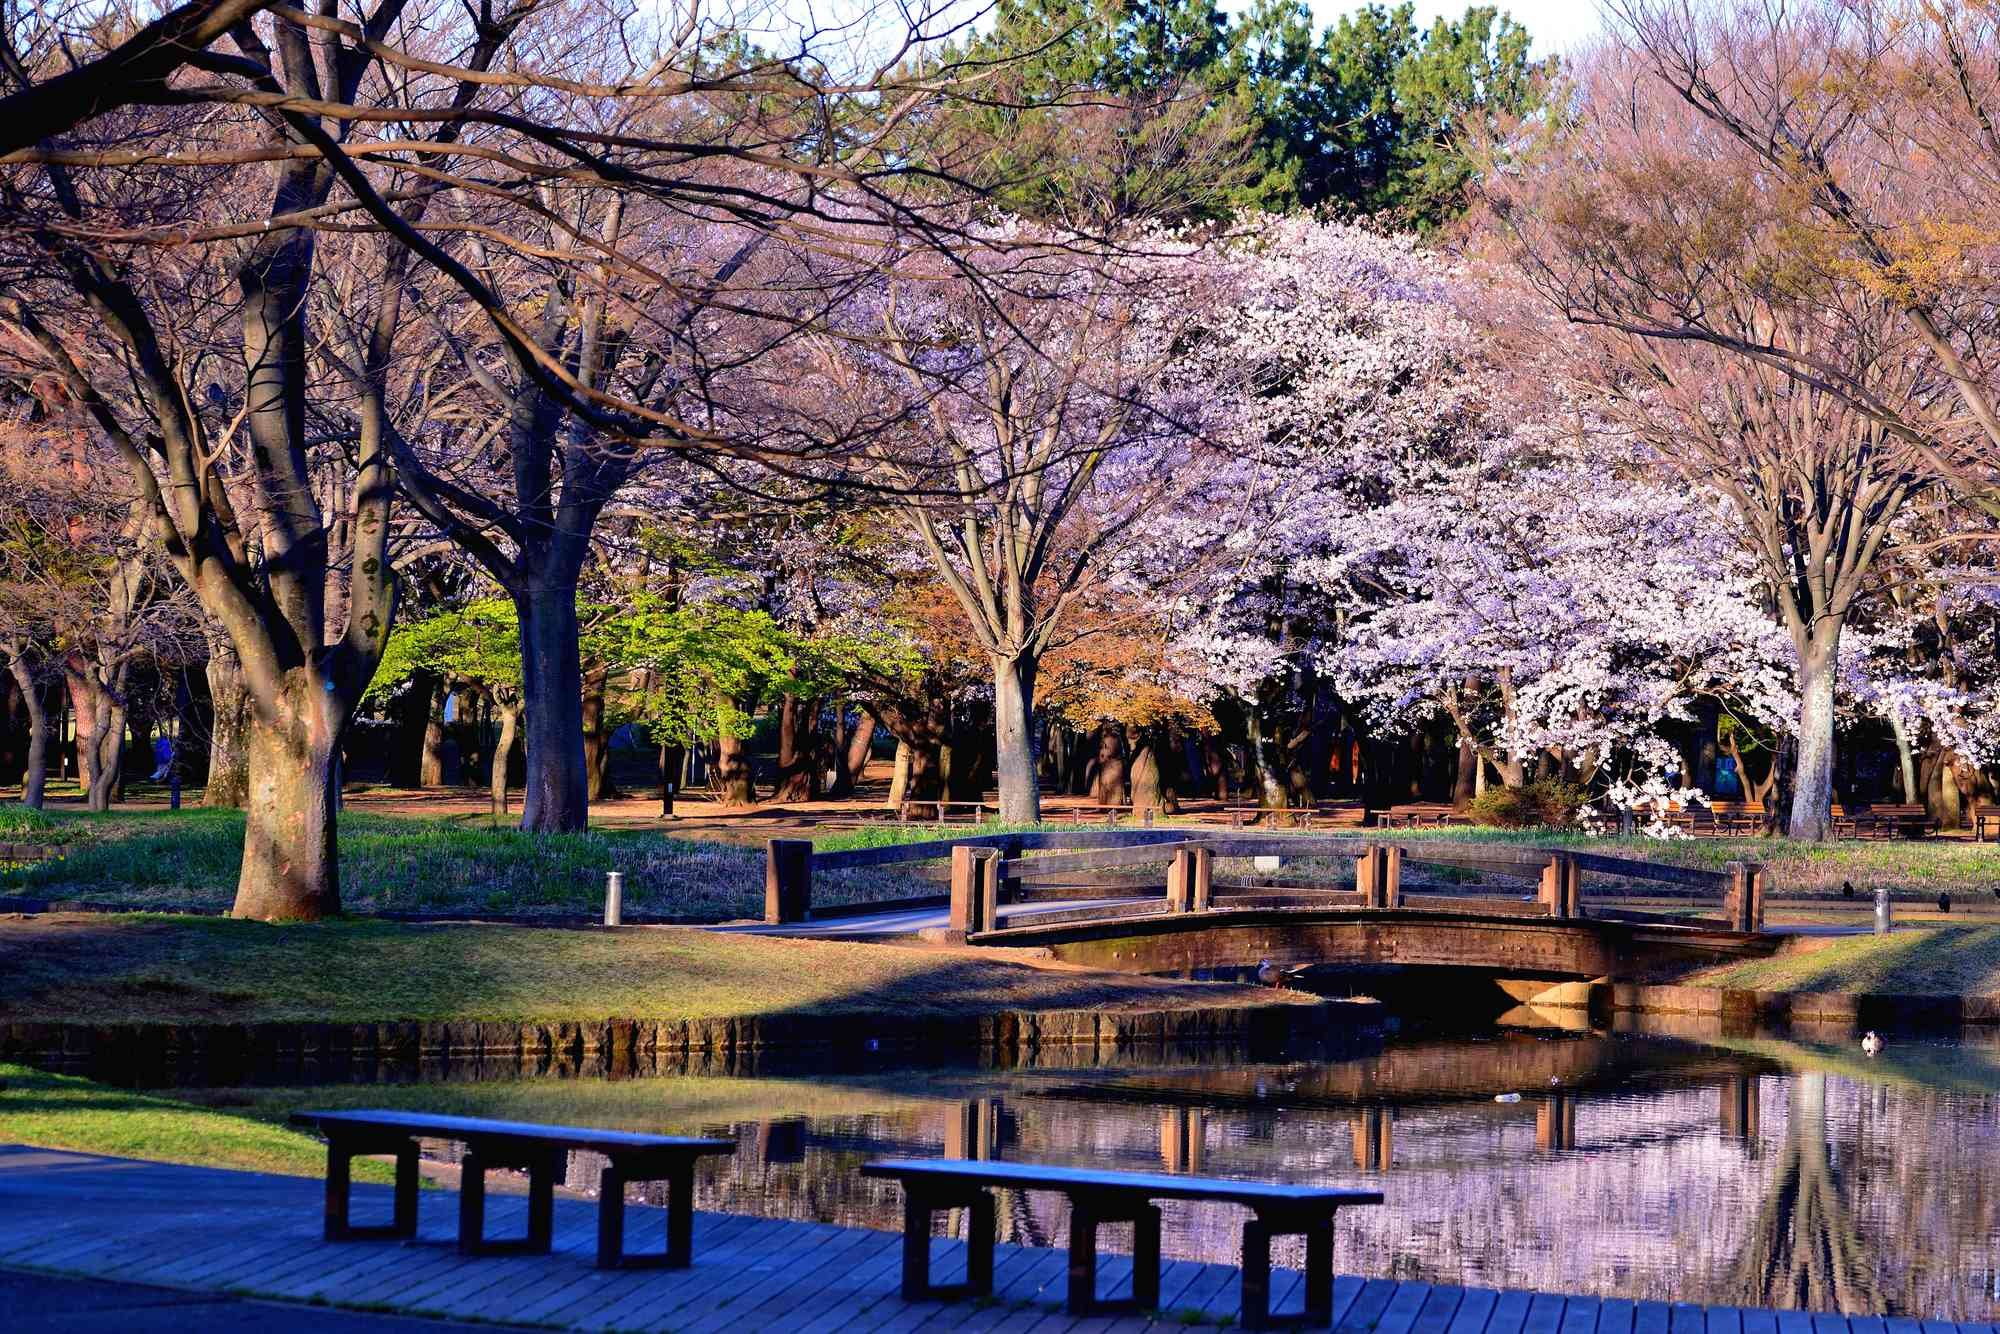 Yoyogi Park: Former Olympic Village, Now a Green City Park|THE GATE|Japan  Travel Magazine: Find Tourism & Travel Info